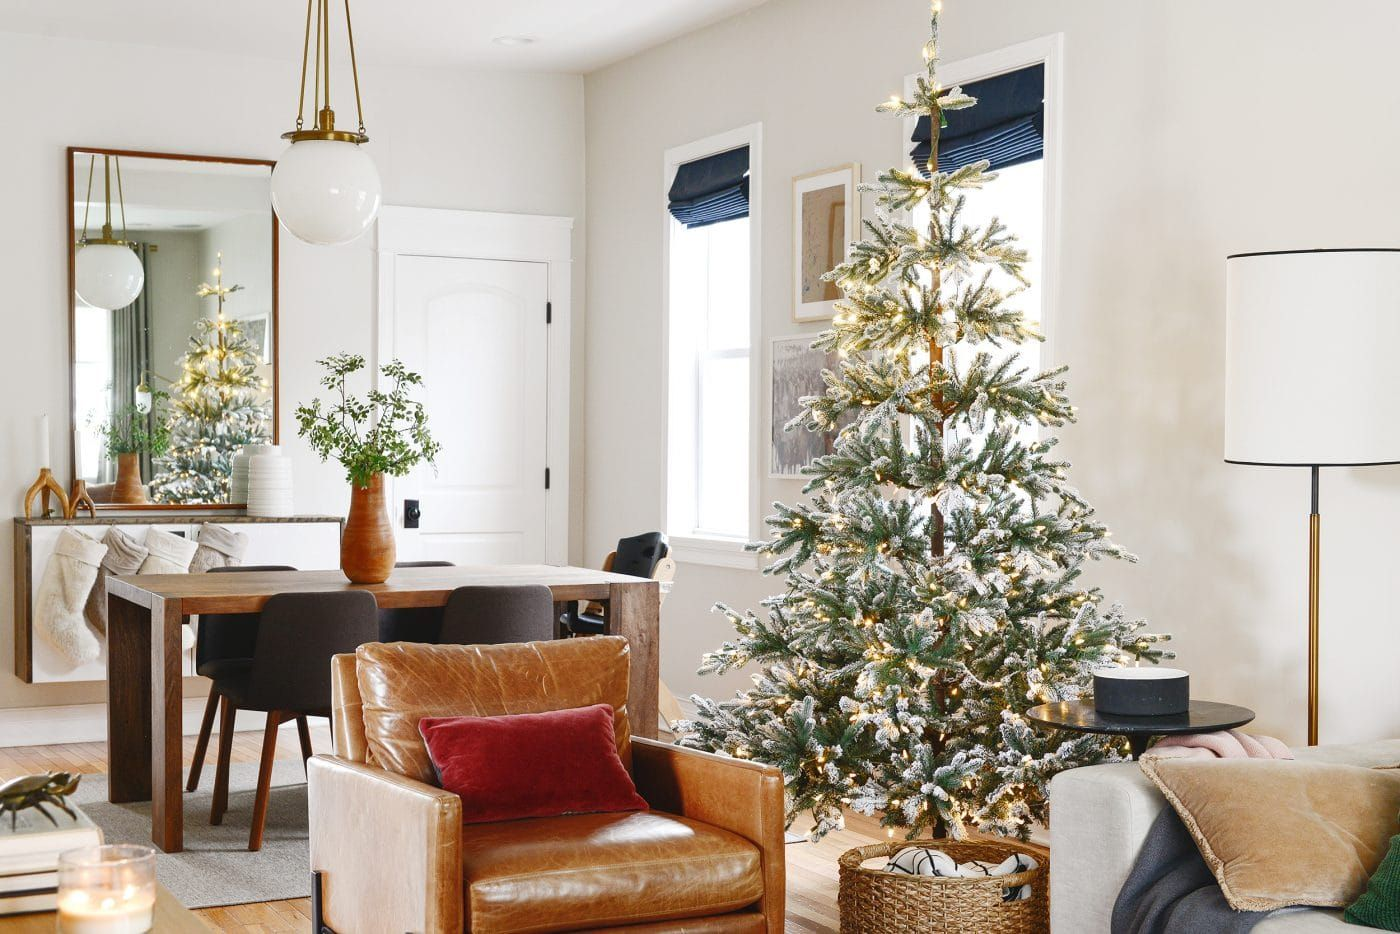 Flocked Trees In Every Shape and Size (With images) | Flocked trees, Flocked christmas trees, Tree